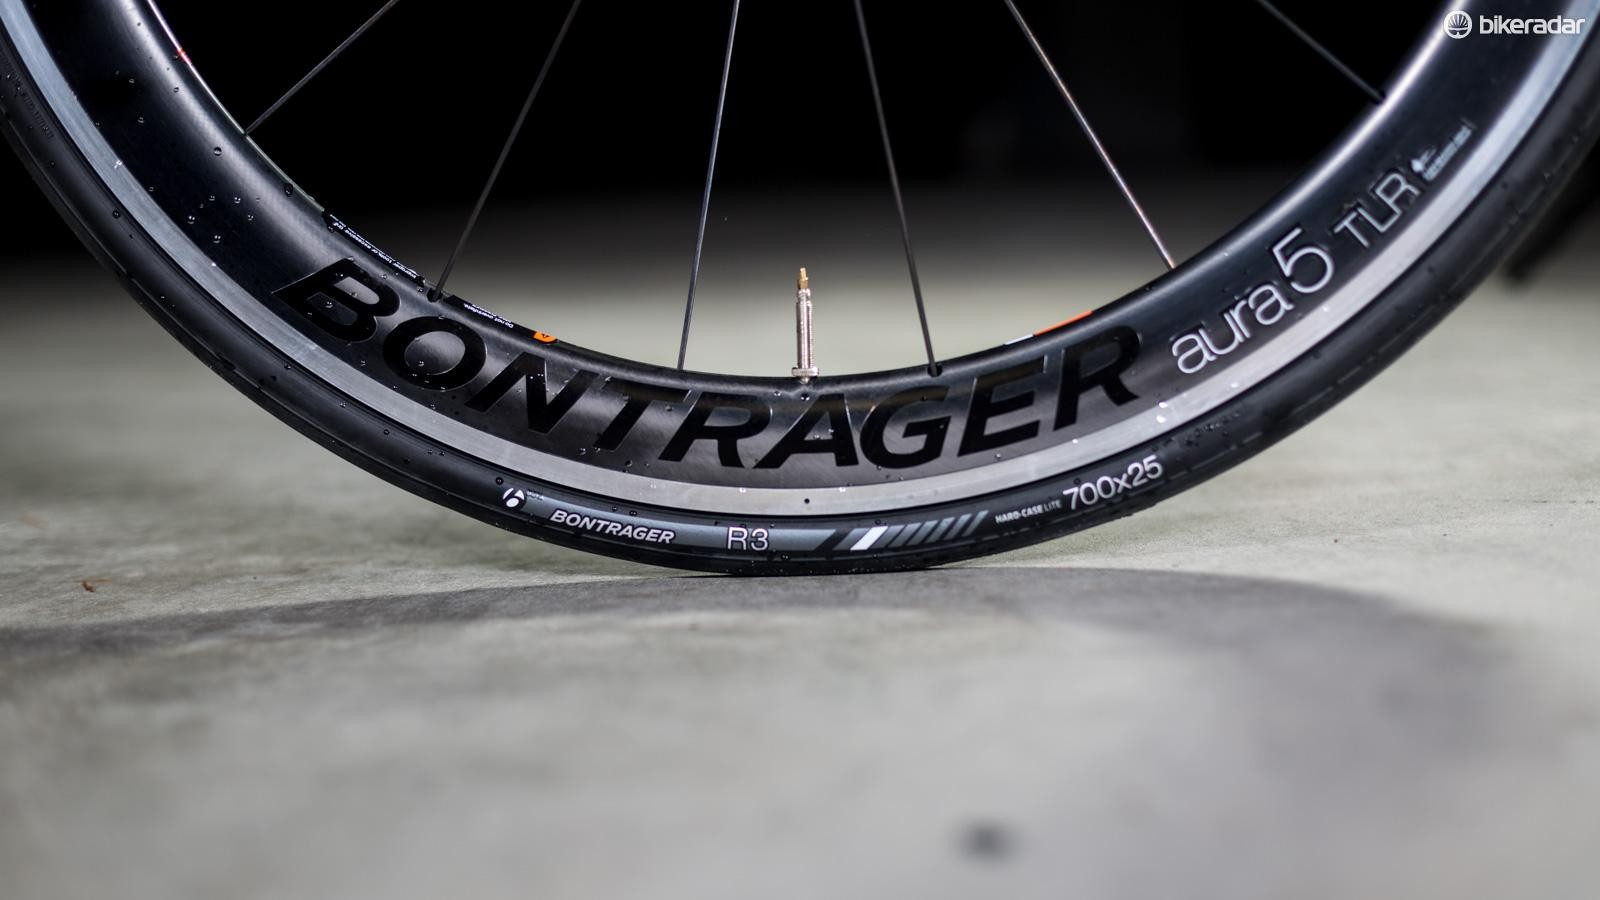 Bontrager's Aura 5 TLR wheel is an alloy rim with a flexible carbon fairing